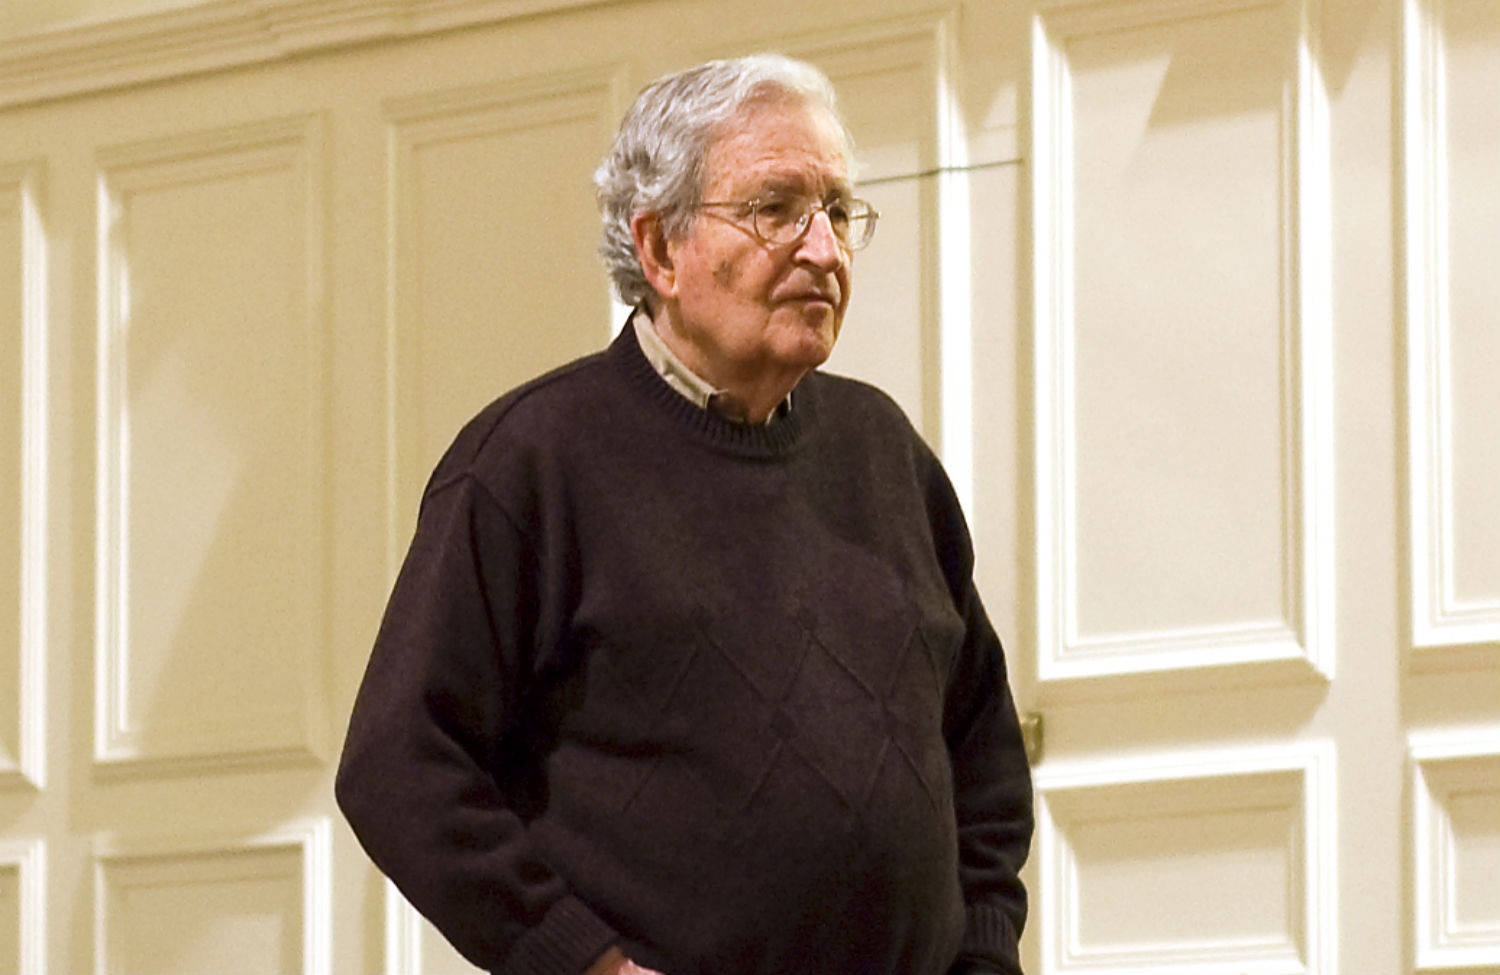 noam chomsky essays interview noam chomsky on the crisis in central america and the nation interview noam chomsky on the crisis in central america and the nation